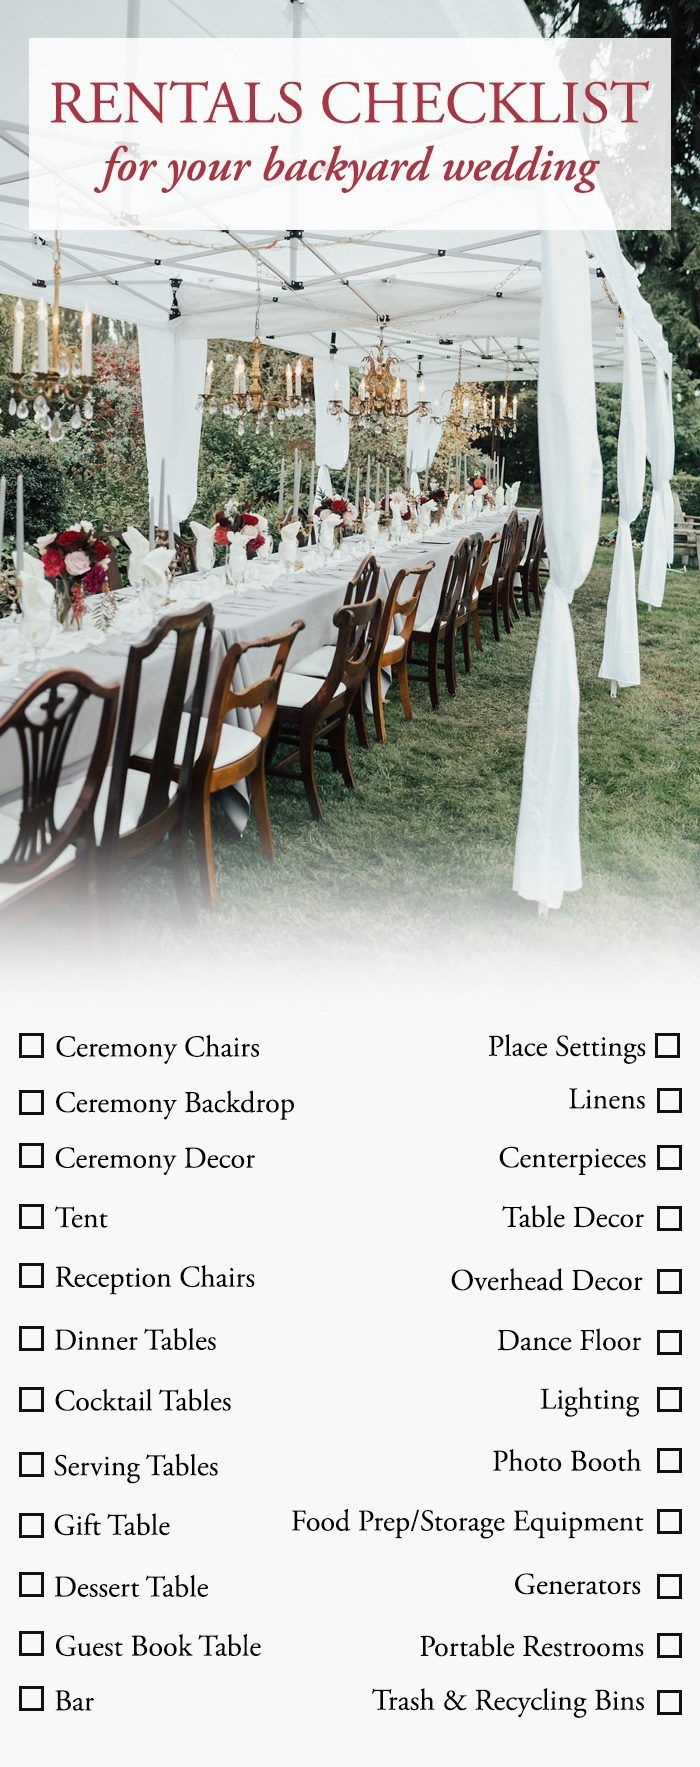 The Ultimate Guide To Planning A Backyard Wedding Junebug Within The Most Amazing Backyard Wedding Reception In 2020 Cheap Backyard Wedding Backyard Wedding Ceremony